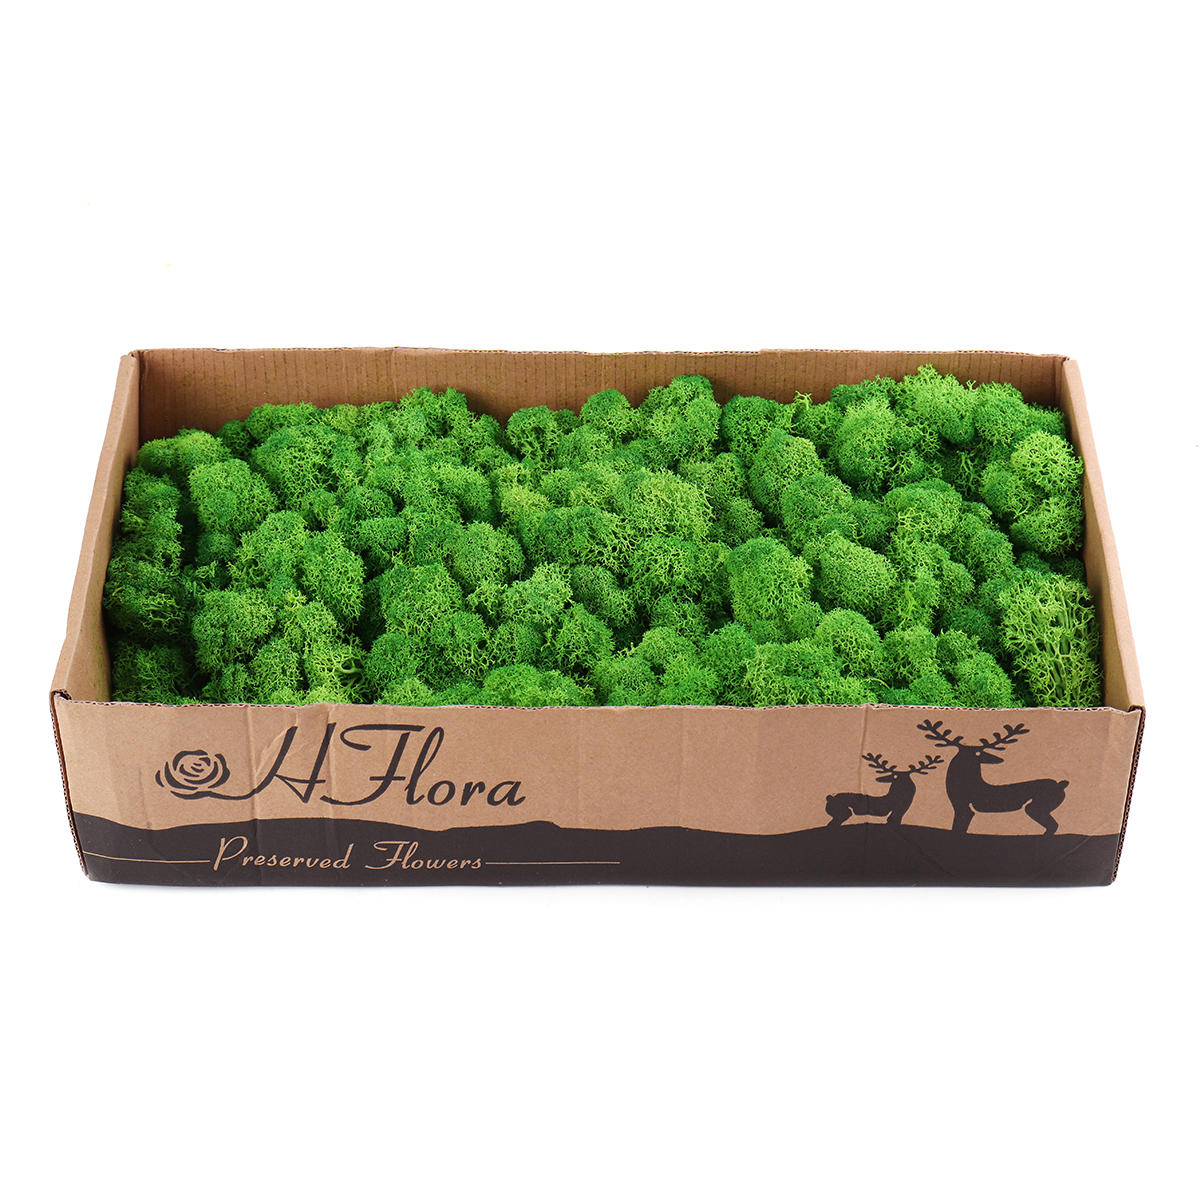 Reindeer Moss l.green 500g Garden Decoration